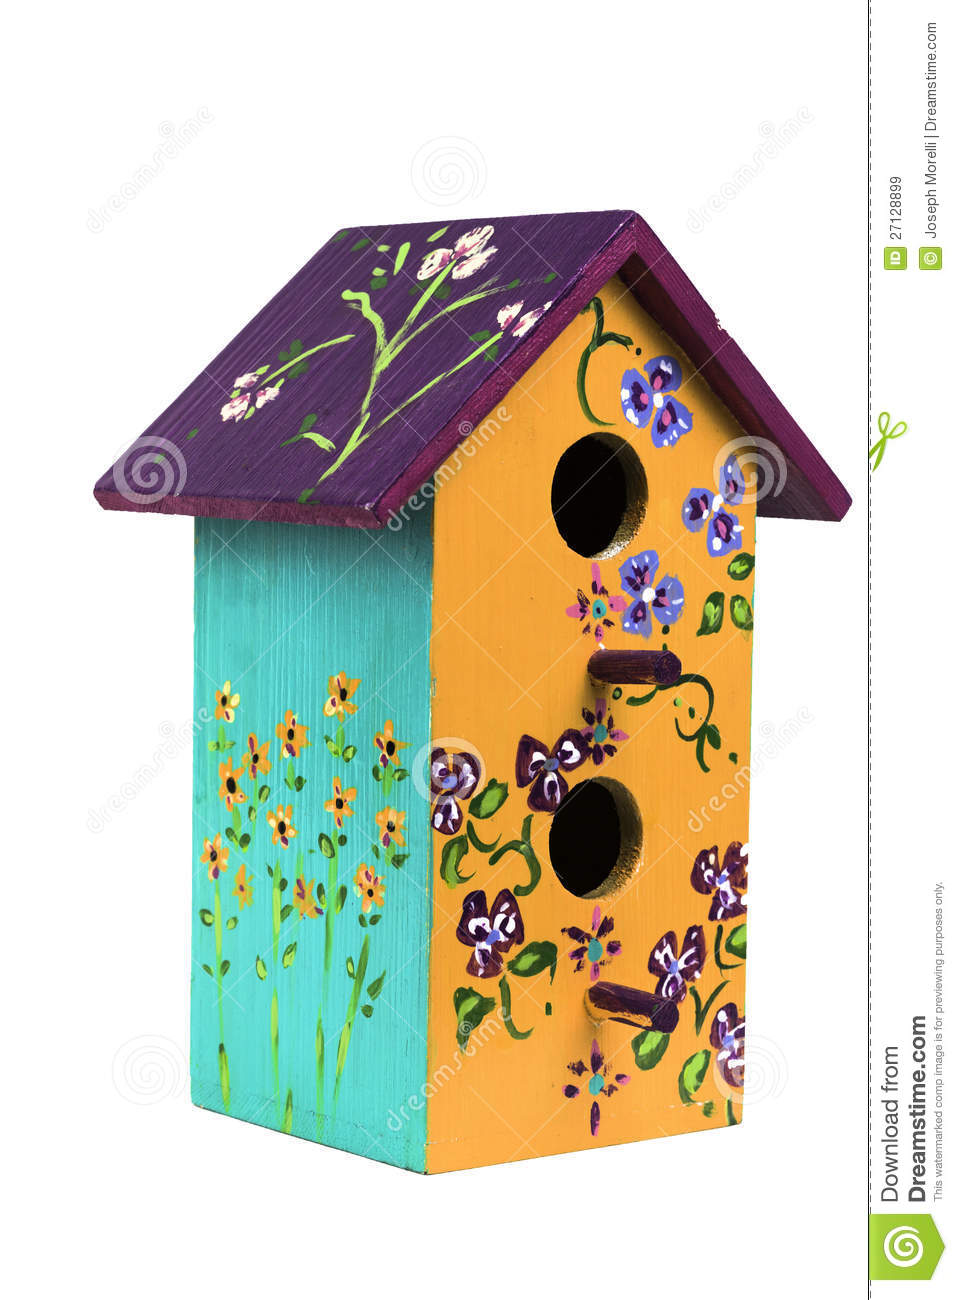 Hand Painted Wooden Birdhouse 1 Stock Image Image Of Painted